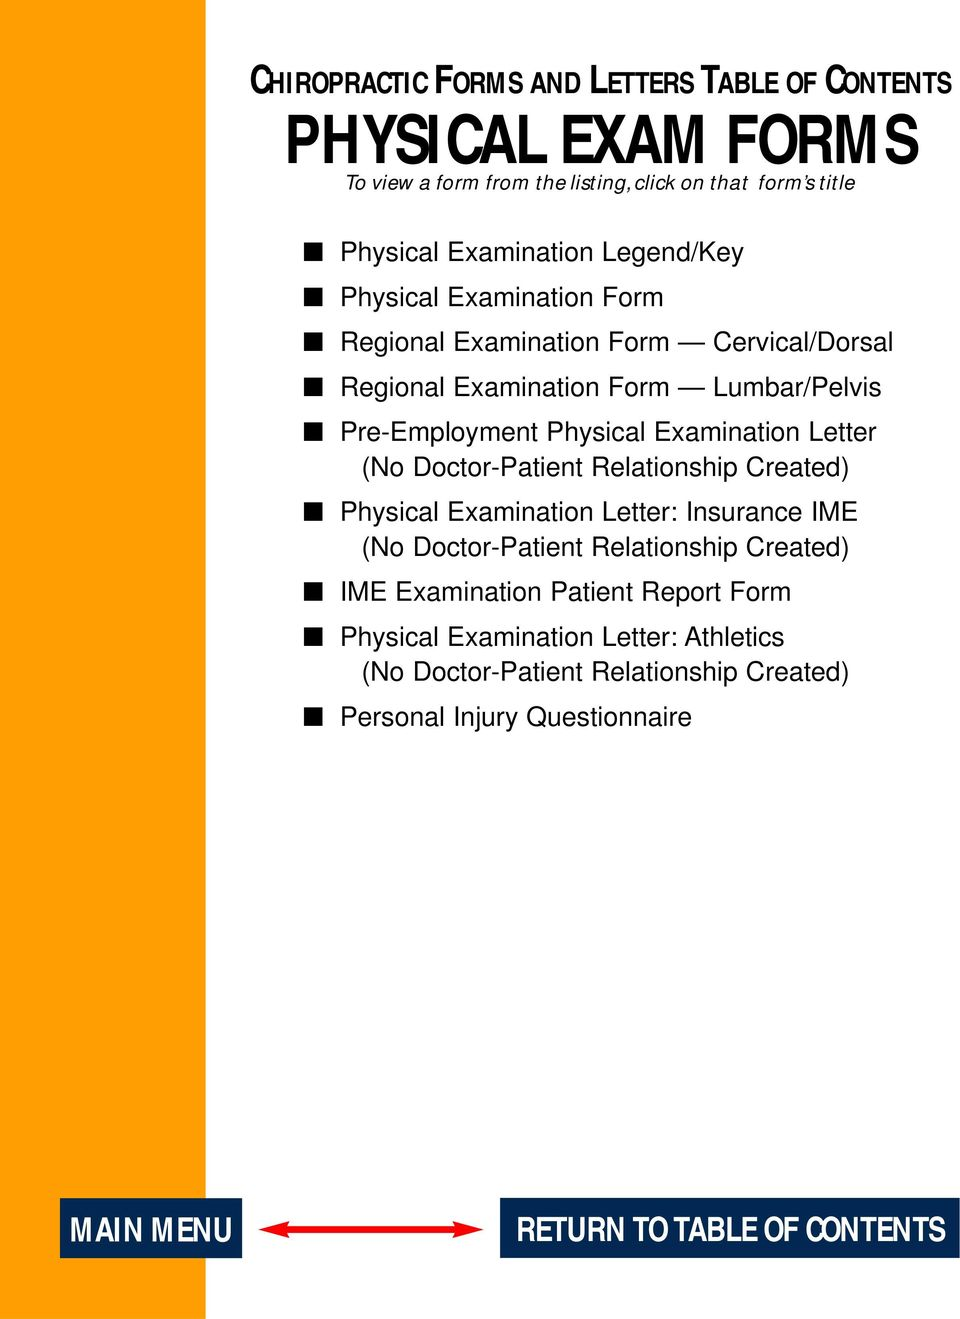 chiropractic introduction guidelines table of contents